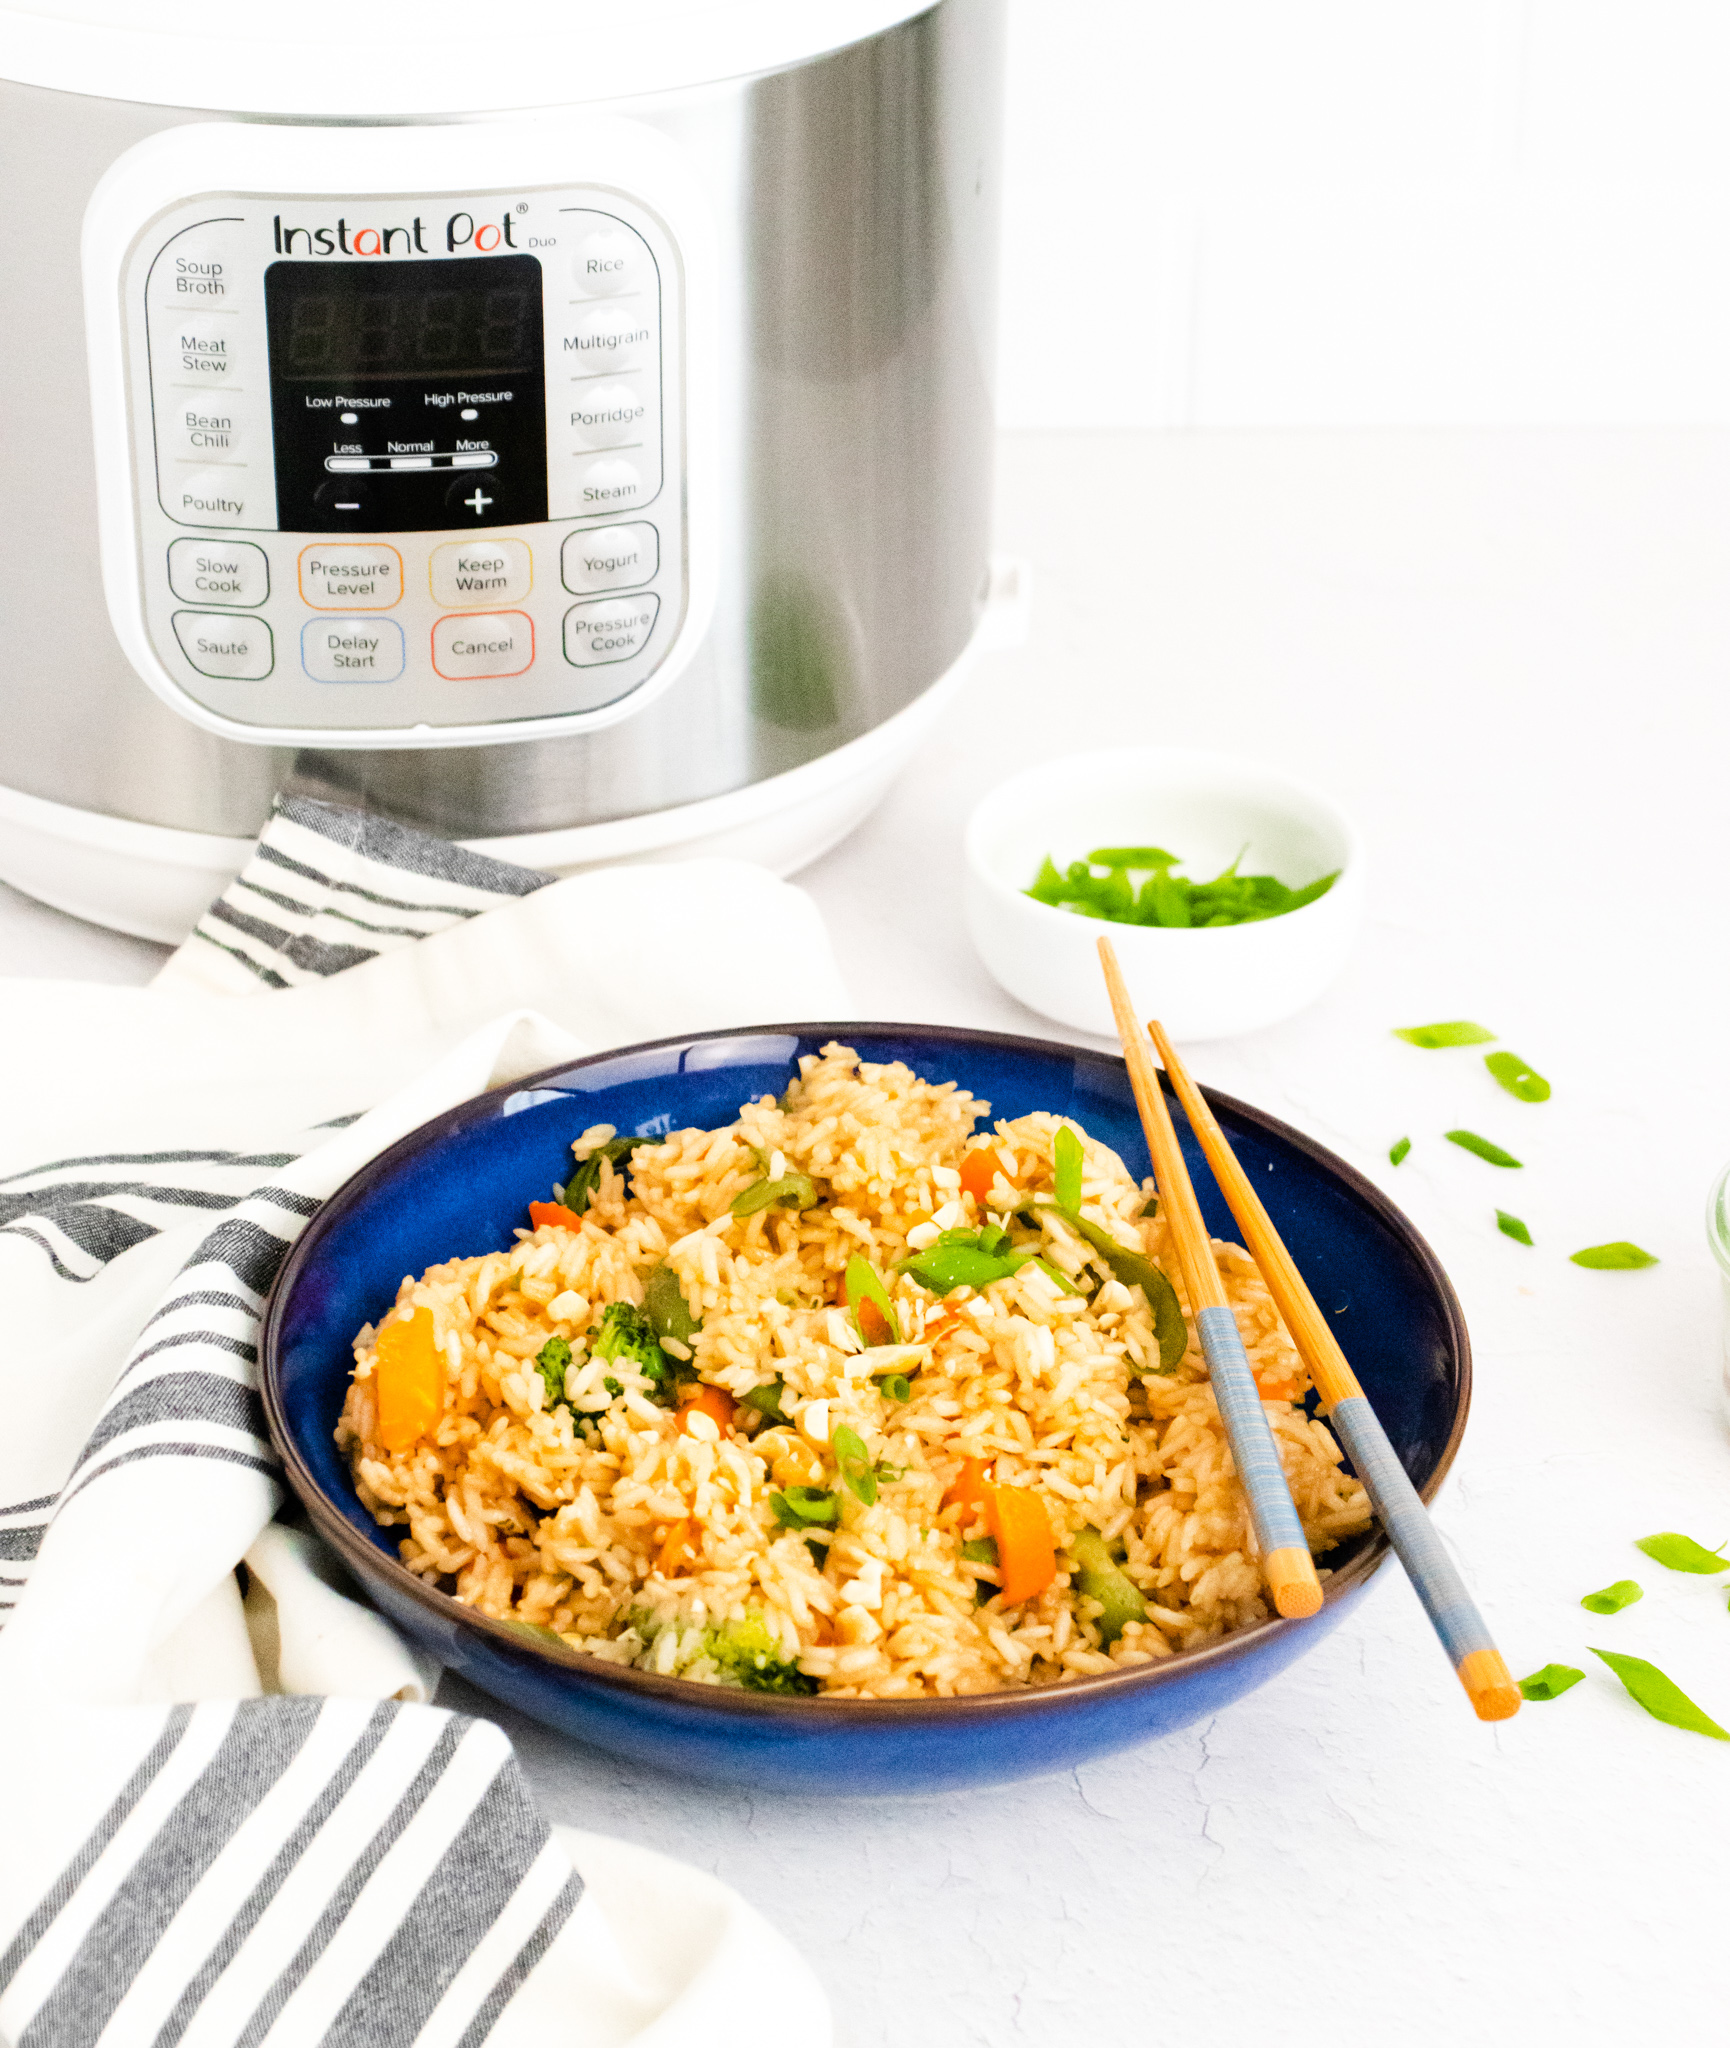 Instant Pot Fried Rice with Instant Pot in background.